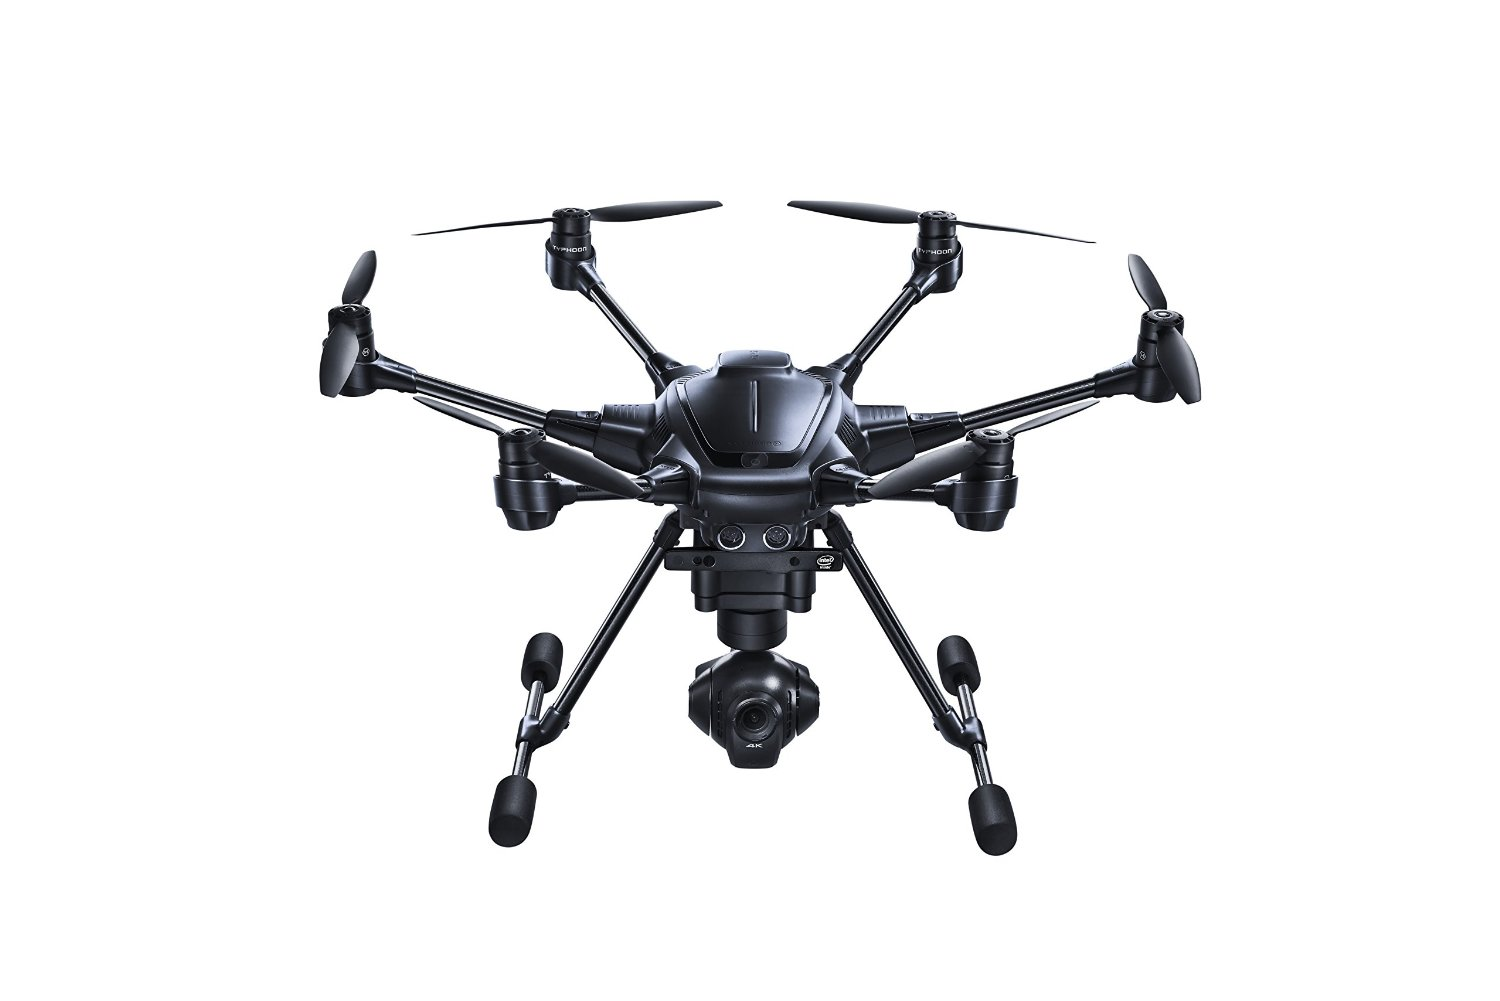 Buy Drone Yuneec Typhoon H Pro Hexacopter With Intel